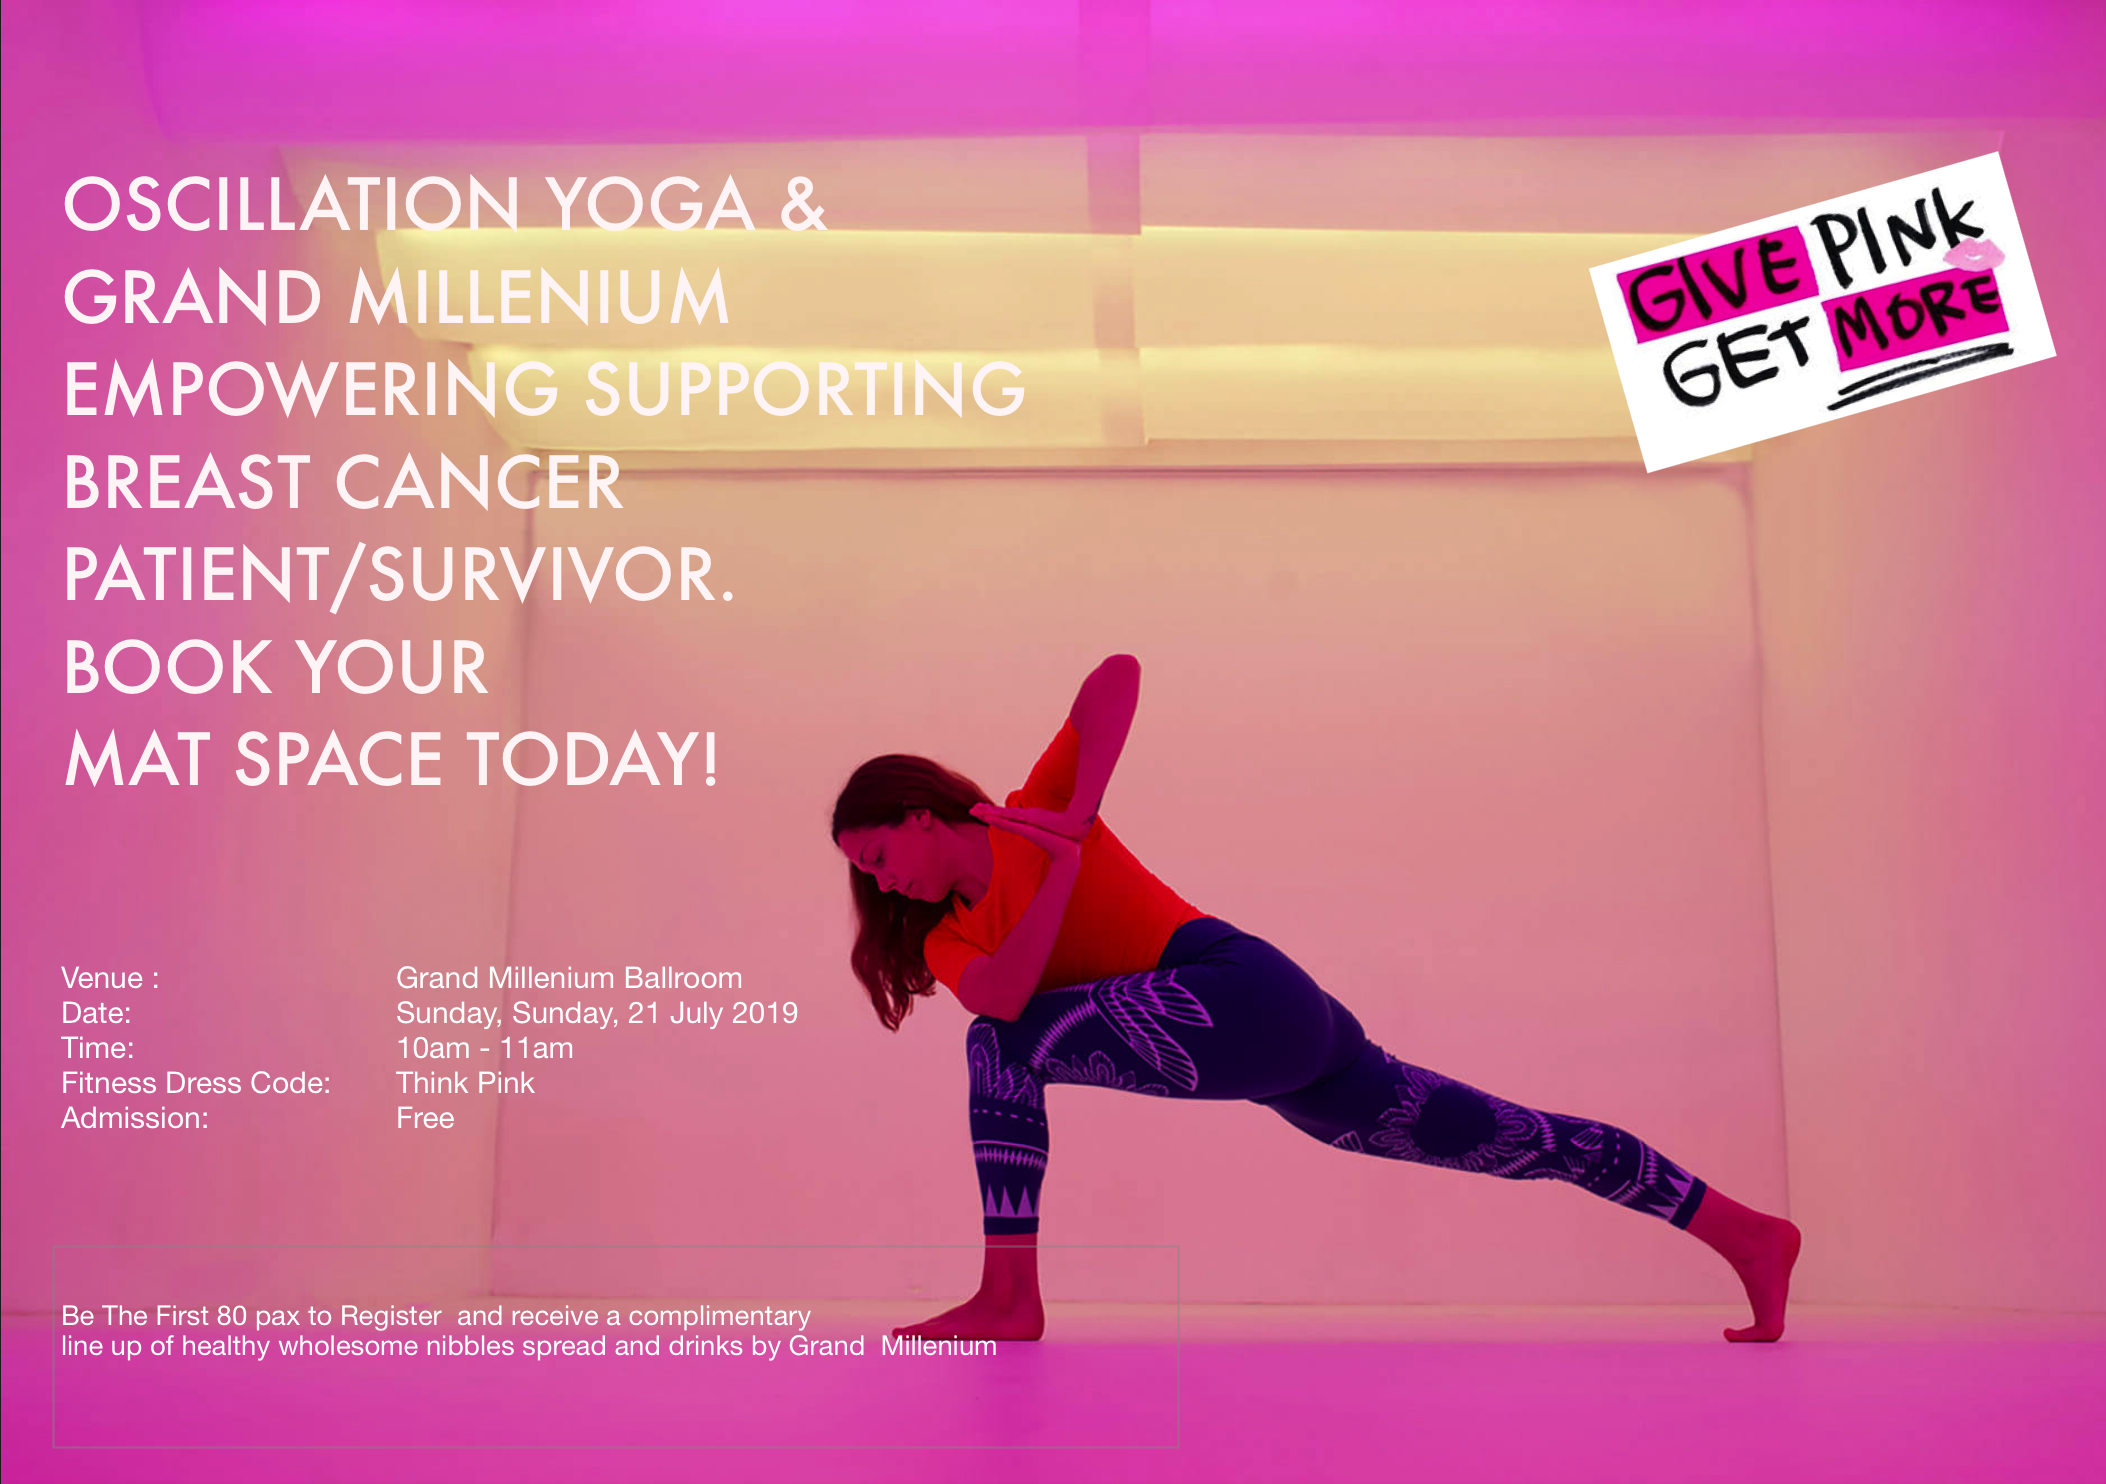 Oscillation Yoga Community & Breast Cancer.png